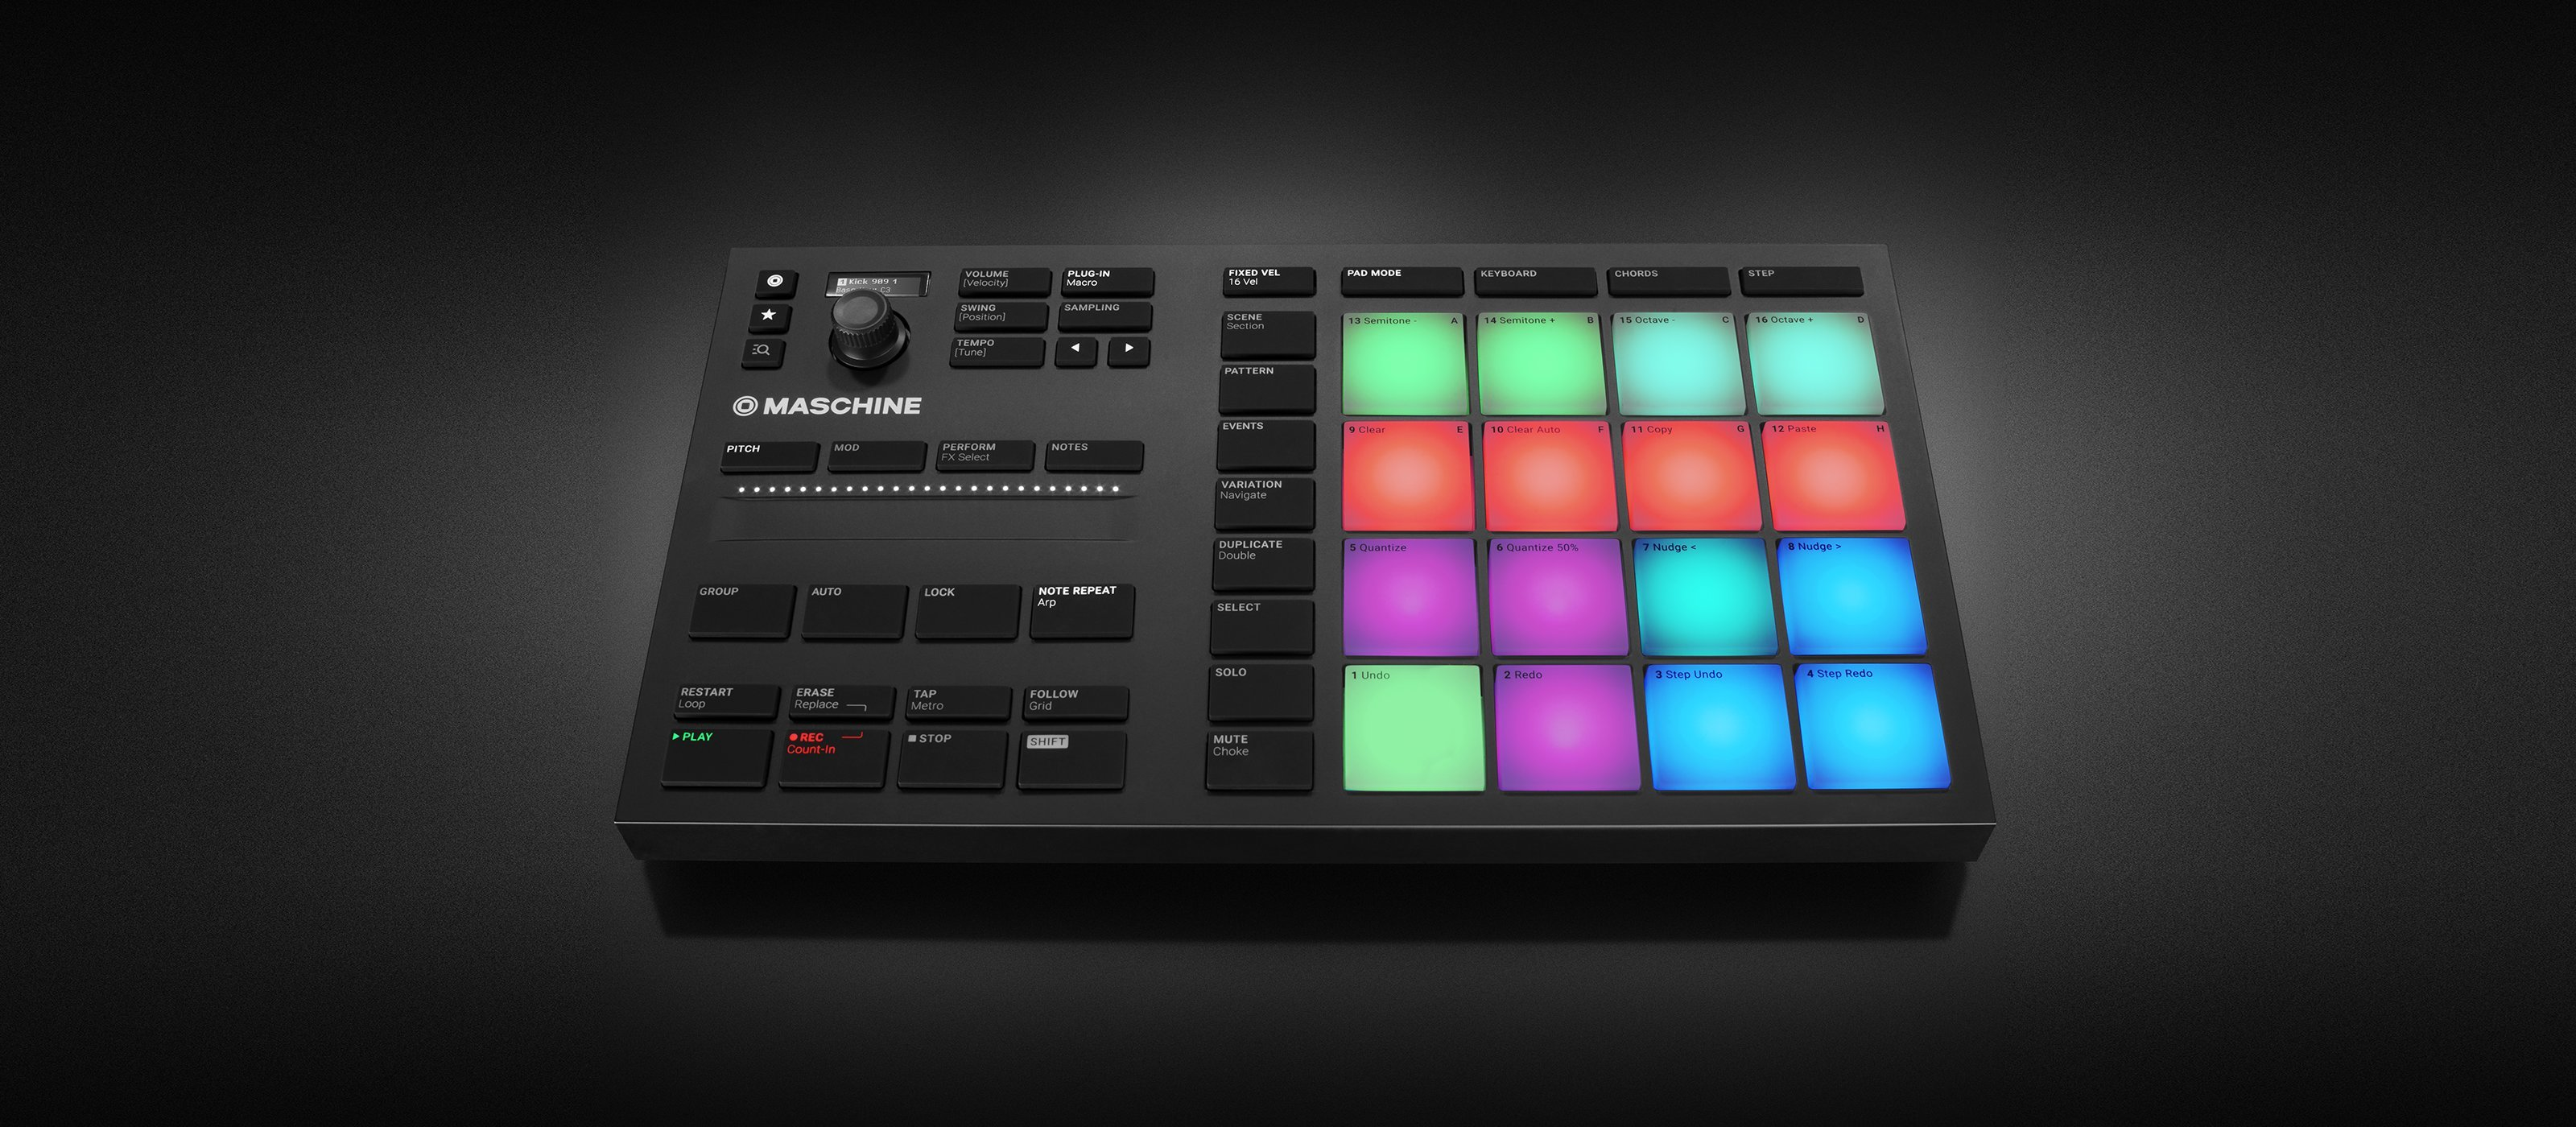 Img ce gallery maschine mikro mk3 overview 04 gallery 02 05 38823c1a4f1e891eeba37614bfff4ee8 d 2x